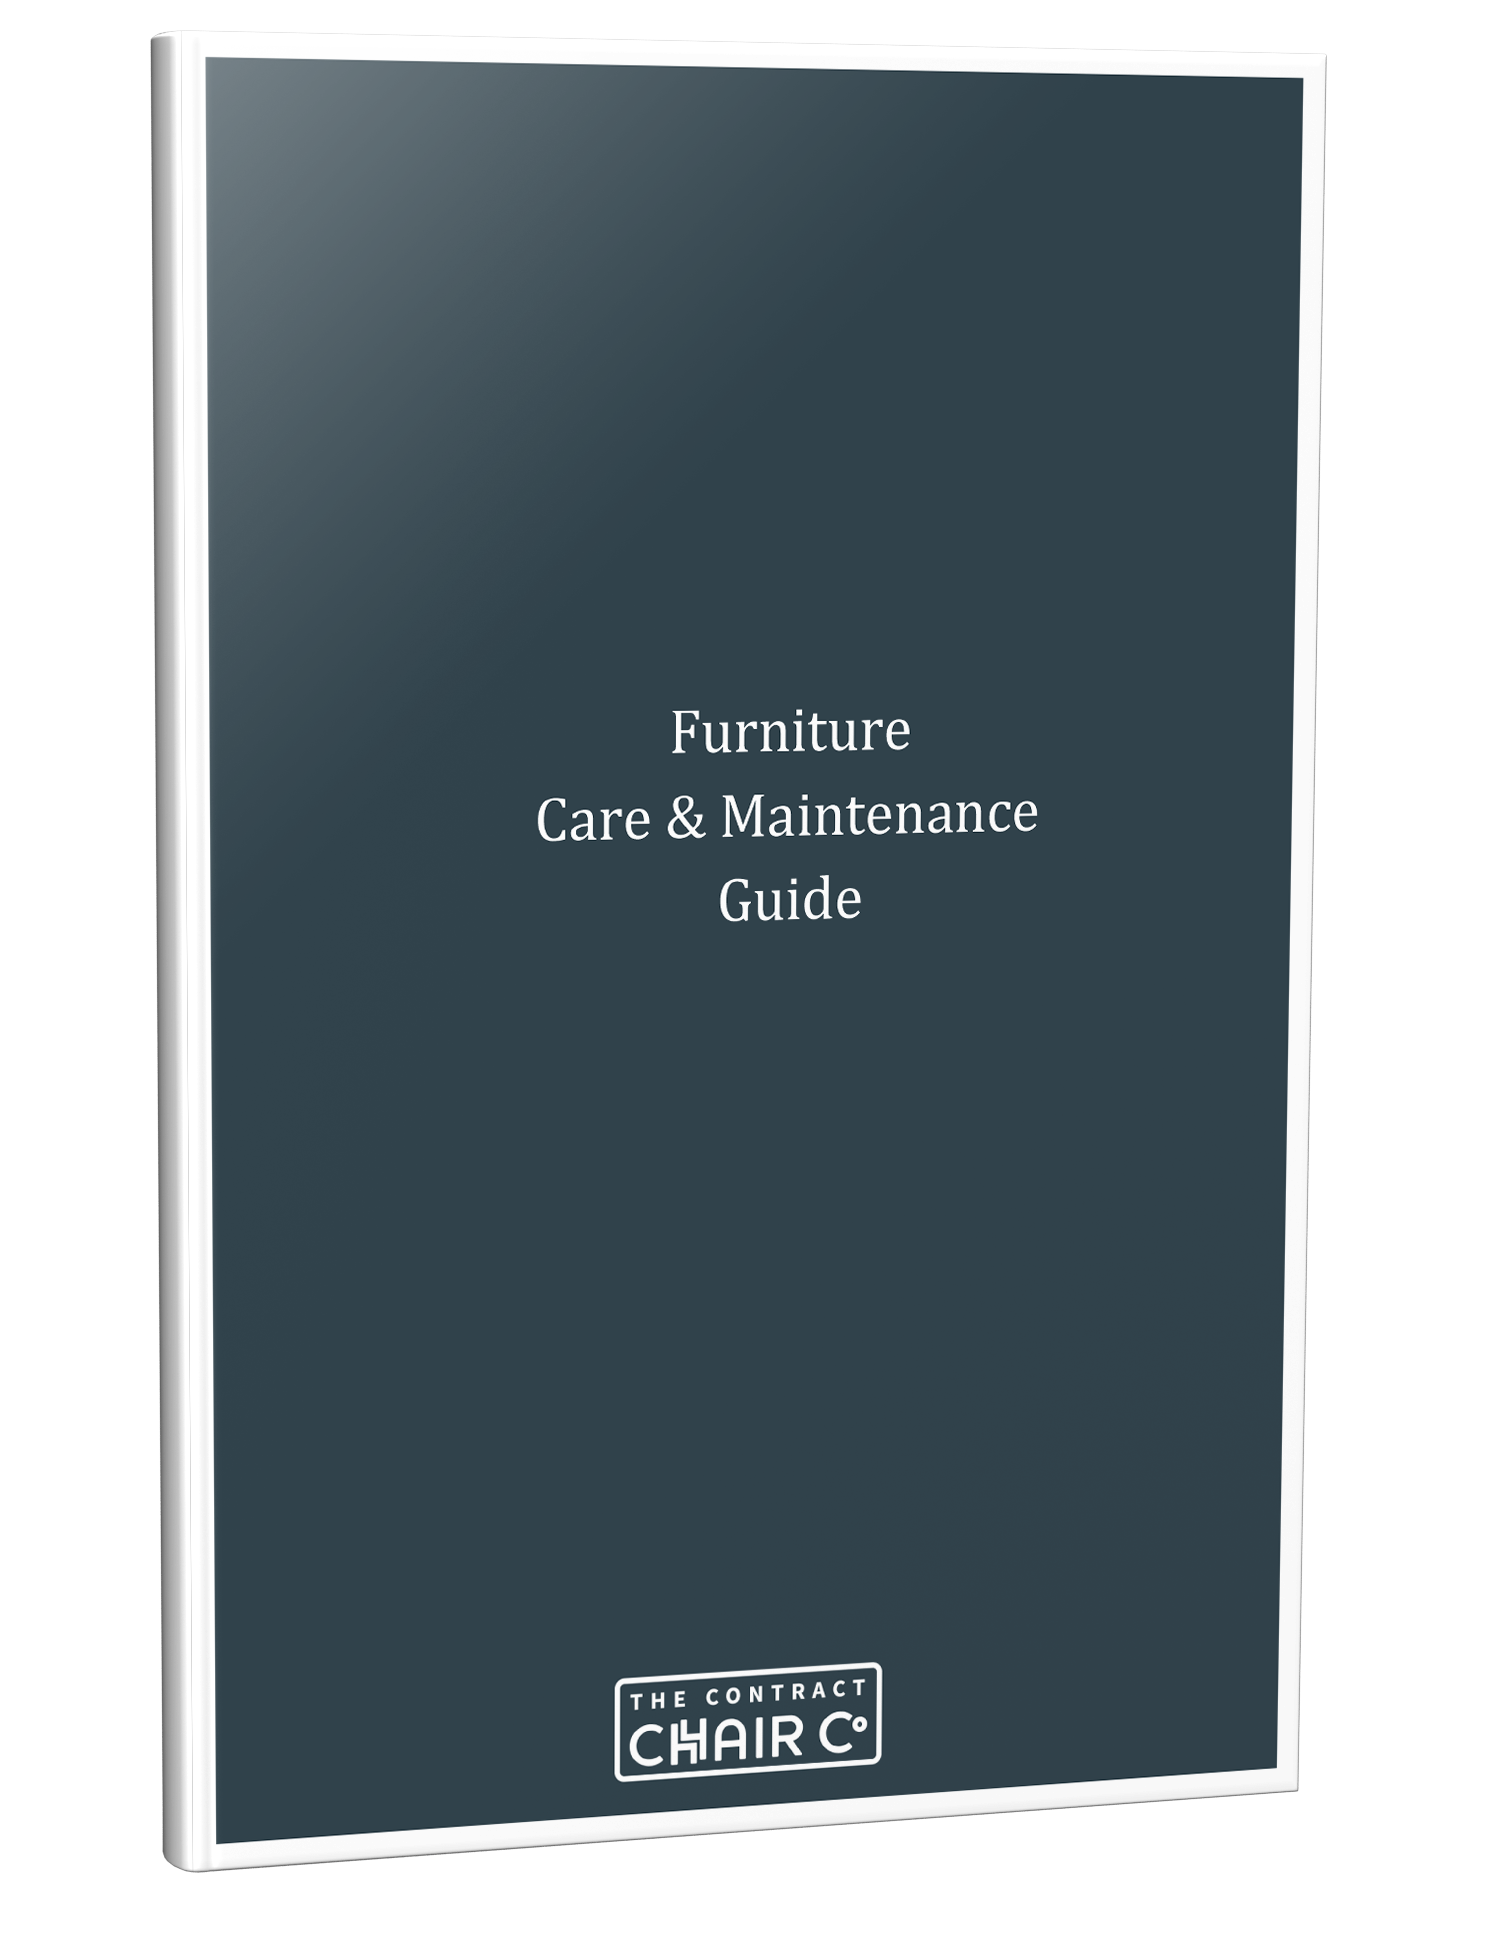 furniture care and maintenance guide cover